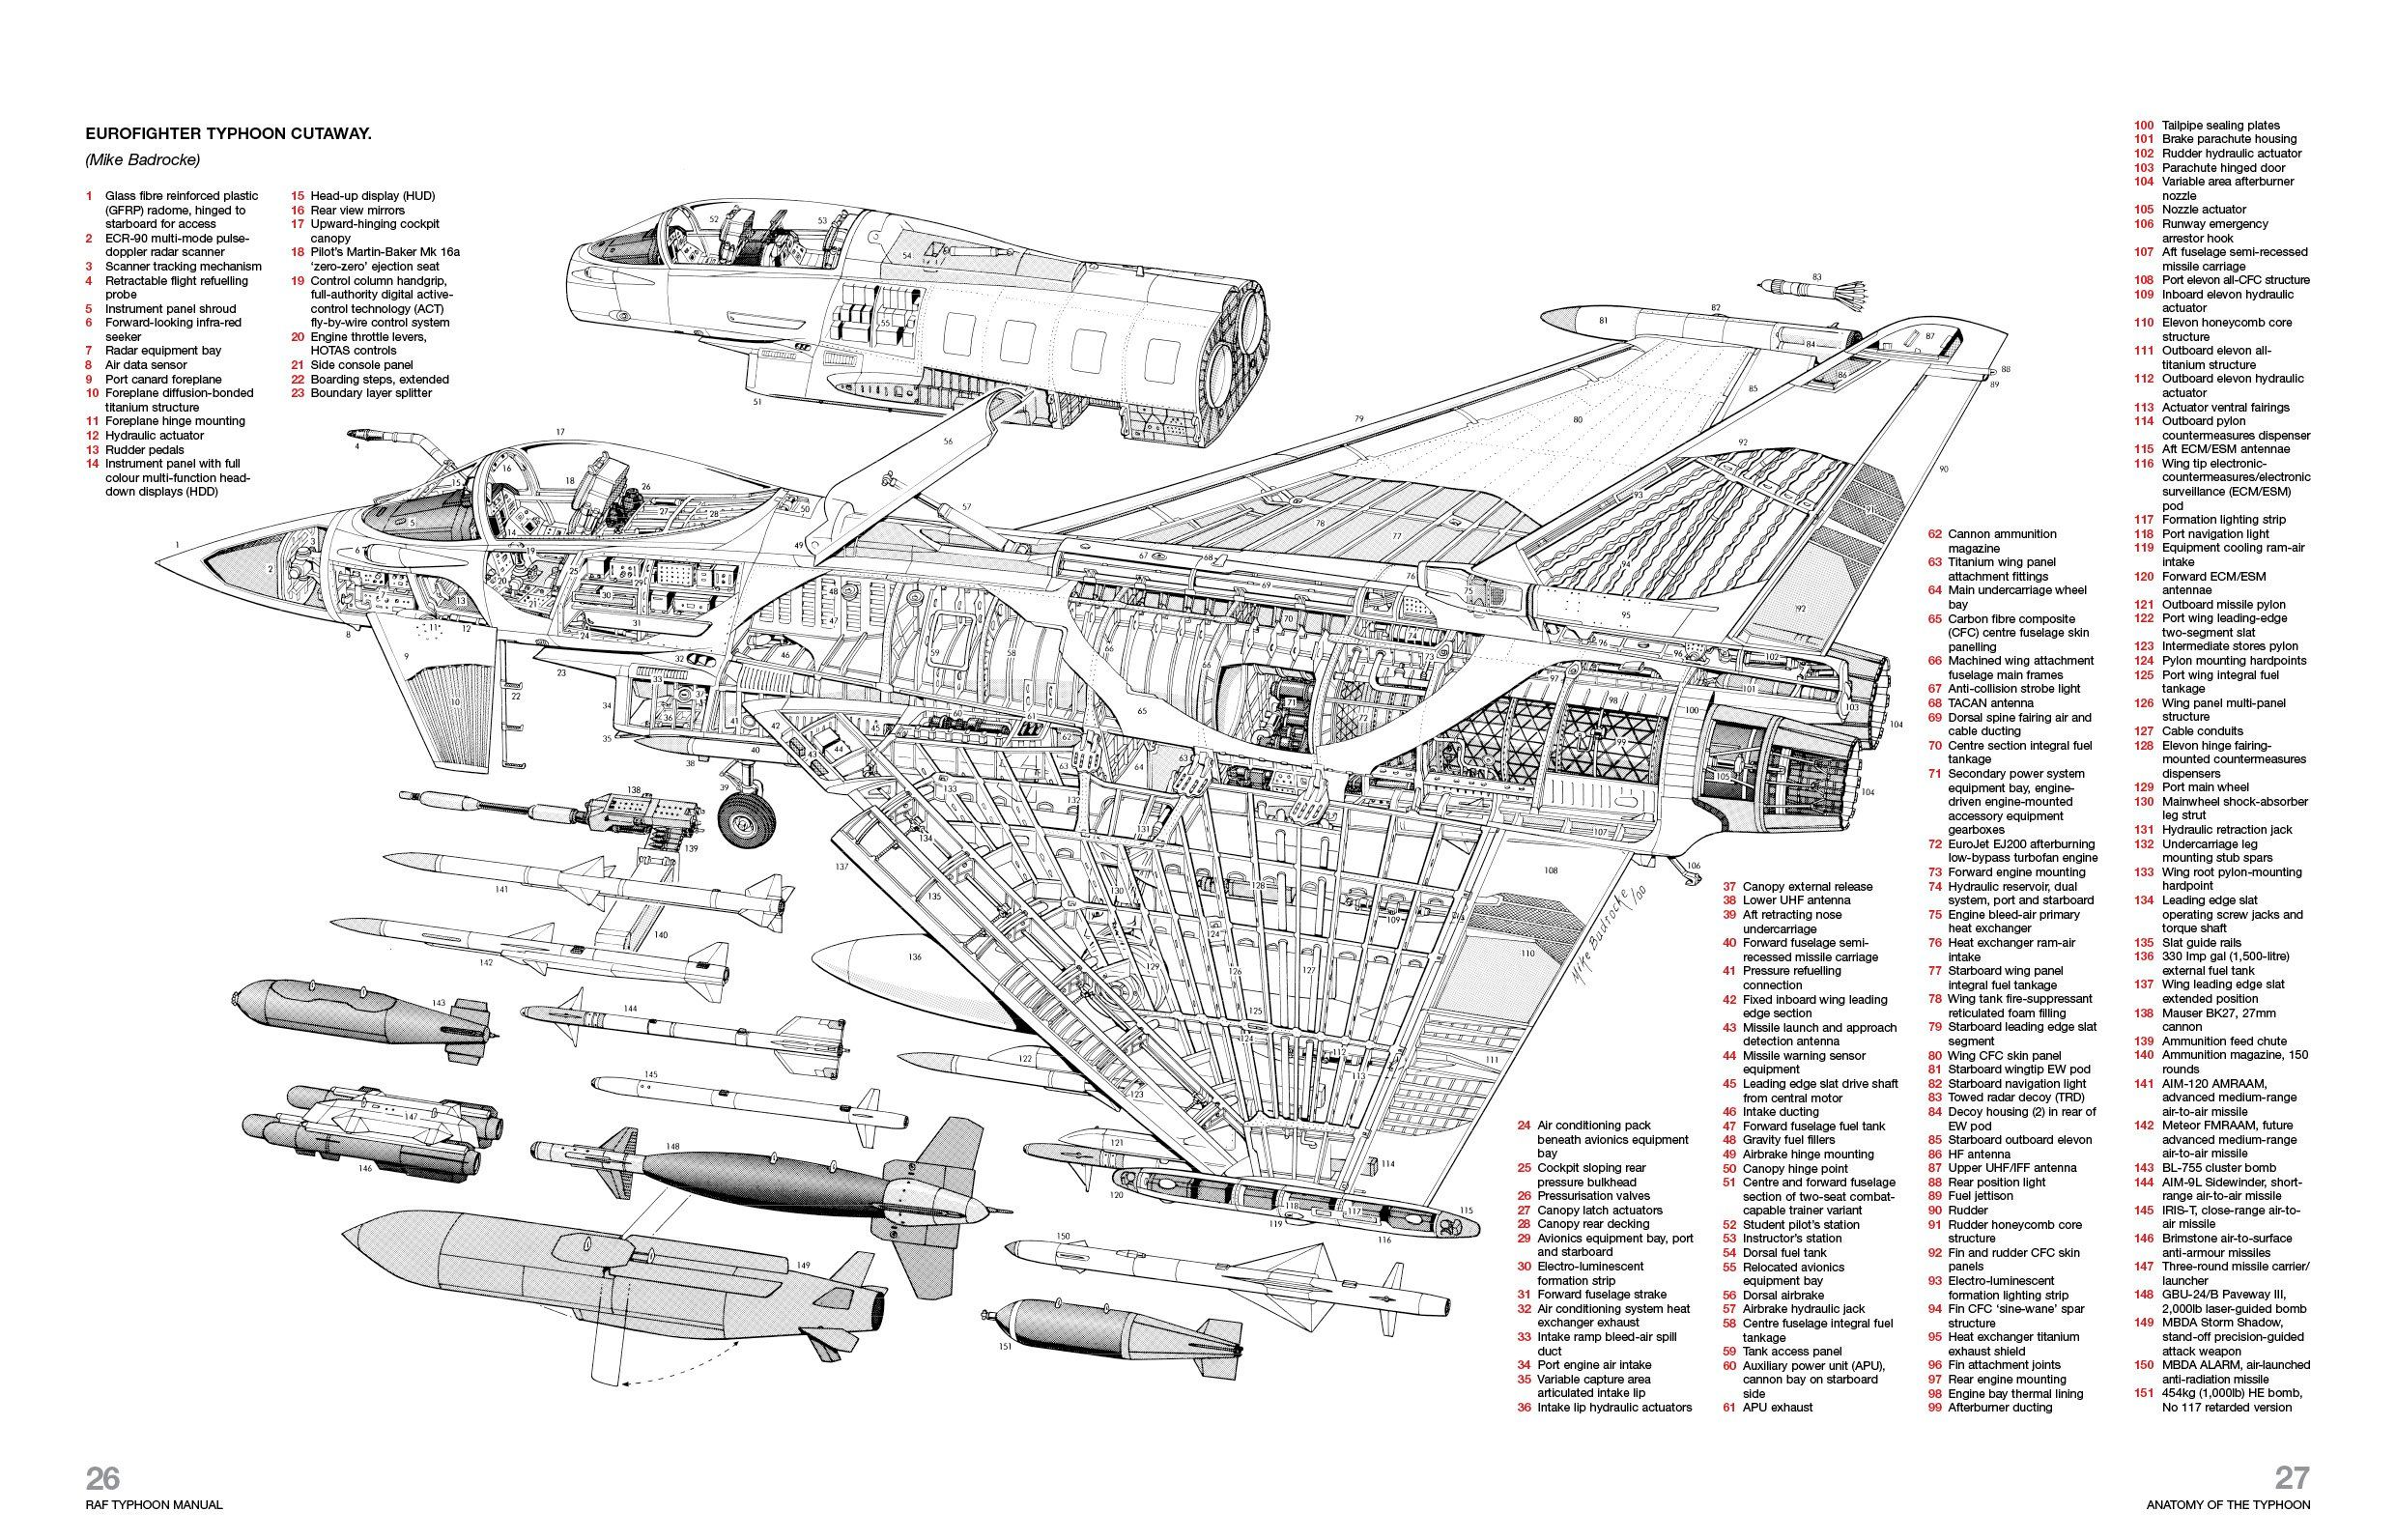 Eurofighter Typhoon Cutaway Aerospace Cutaways And